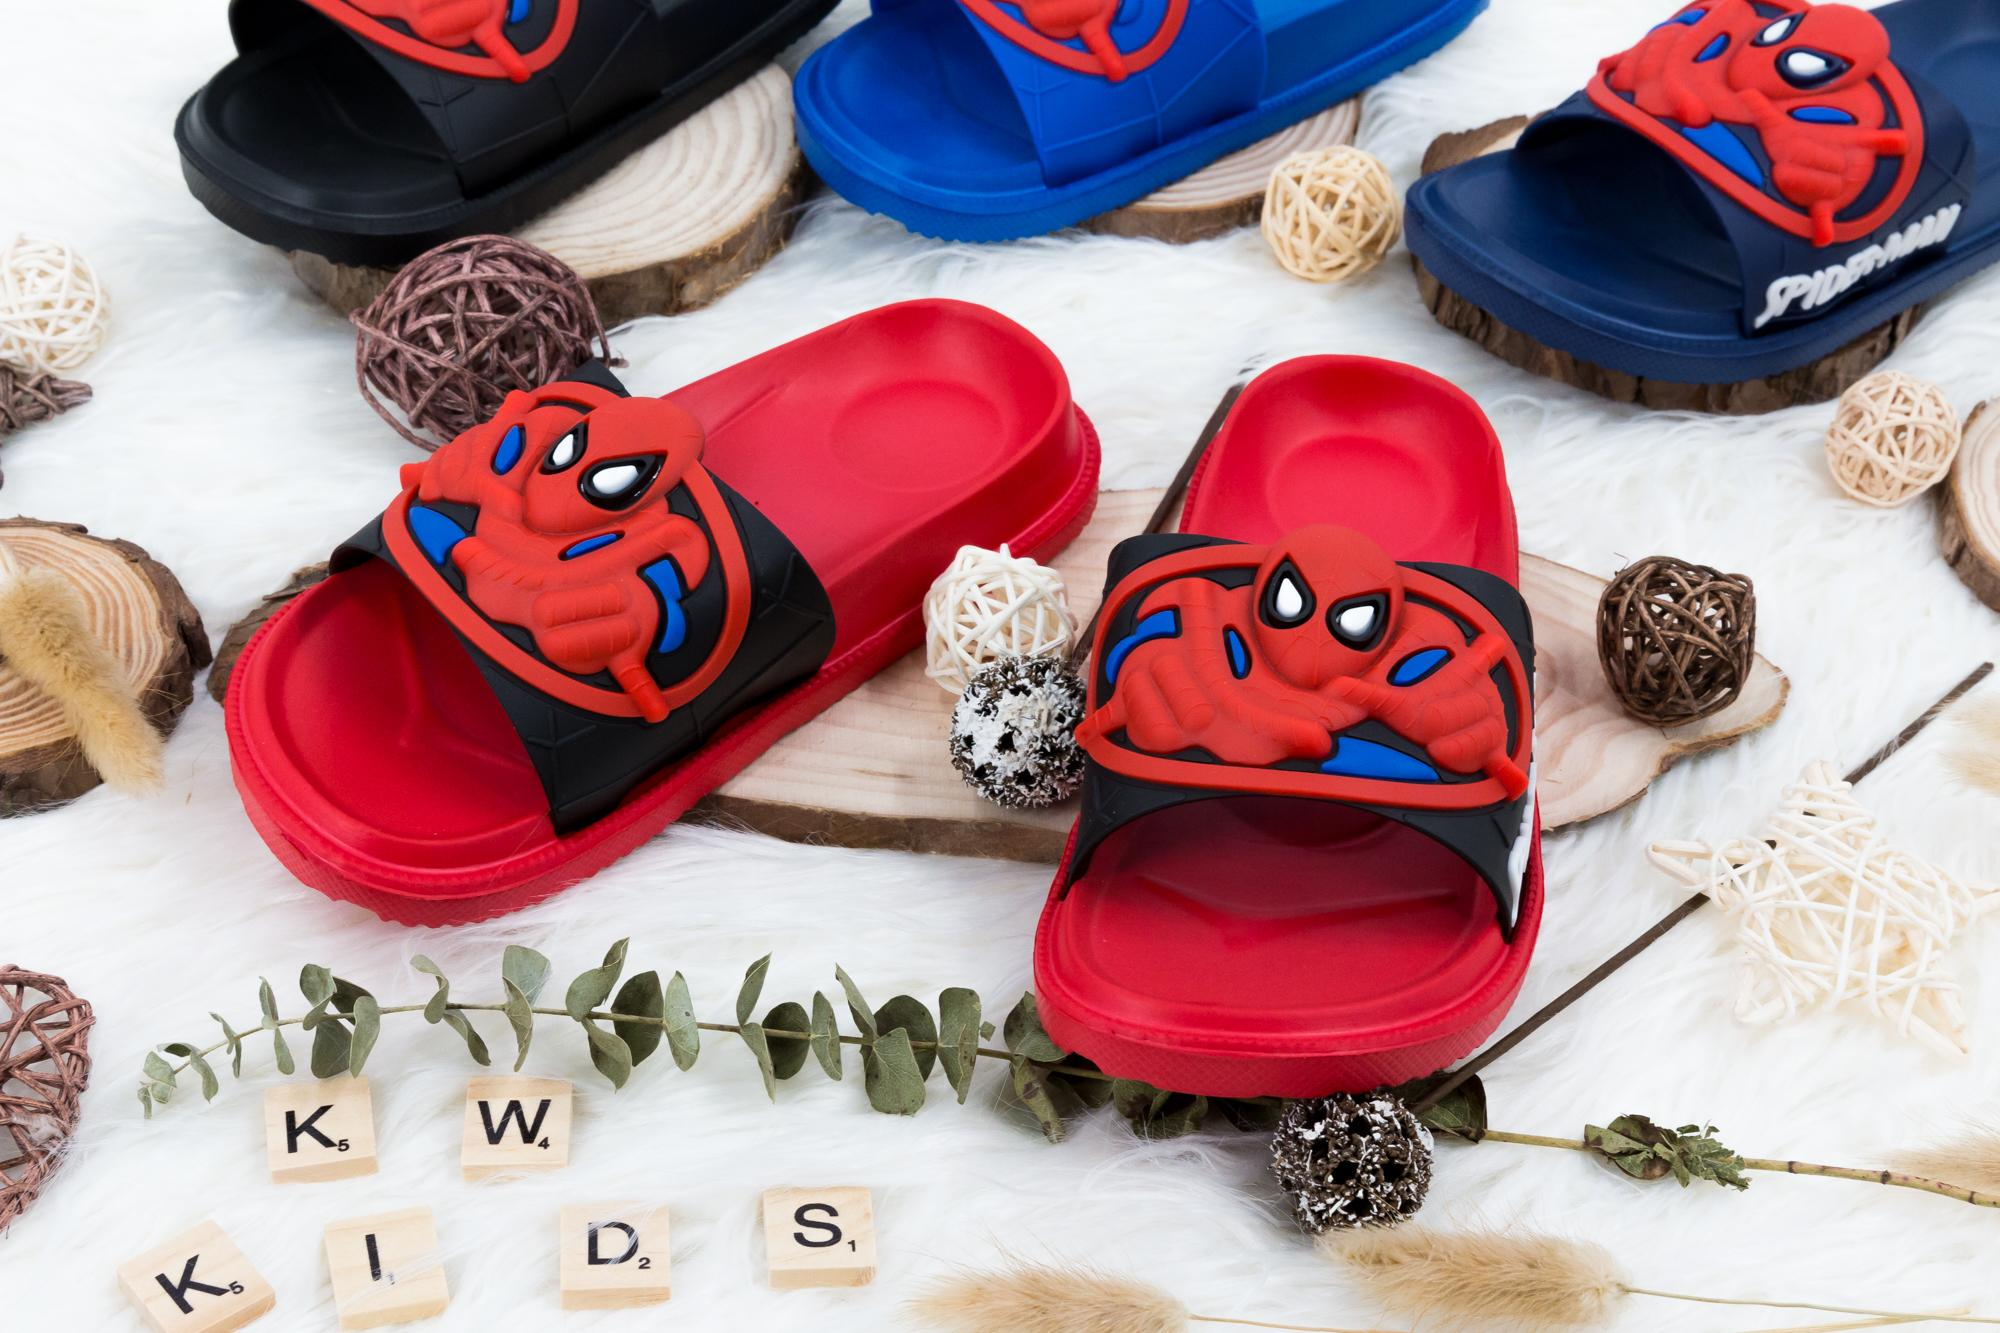 d3533c32d Boys Shoes. 15507 items found in Shoes. KWKids High quality Unisex Cartoon  Slides 738M